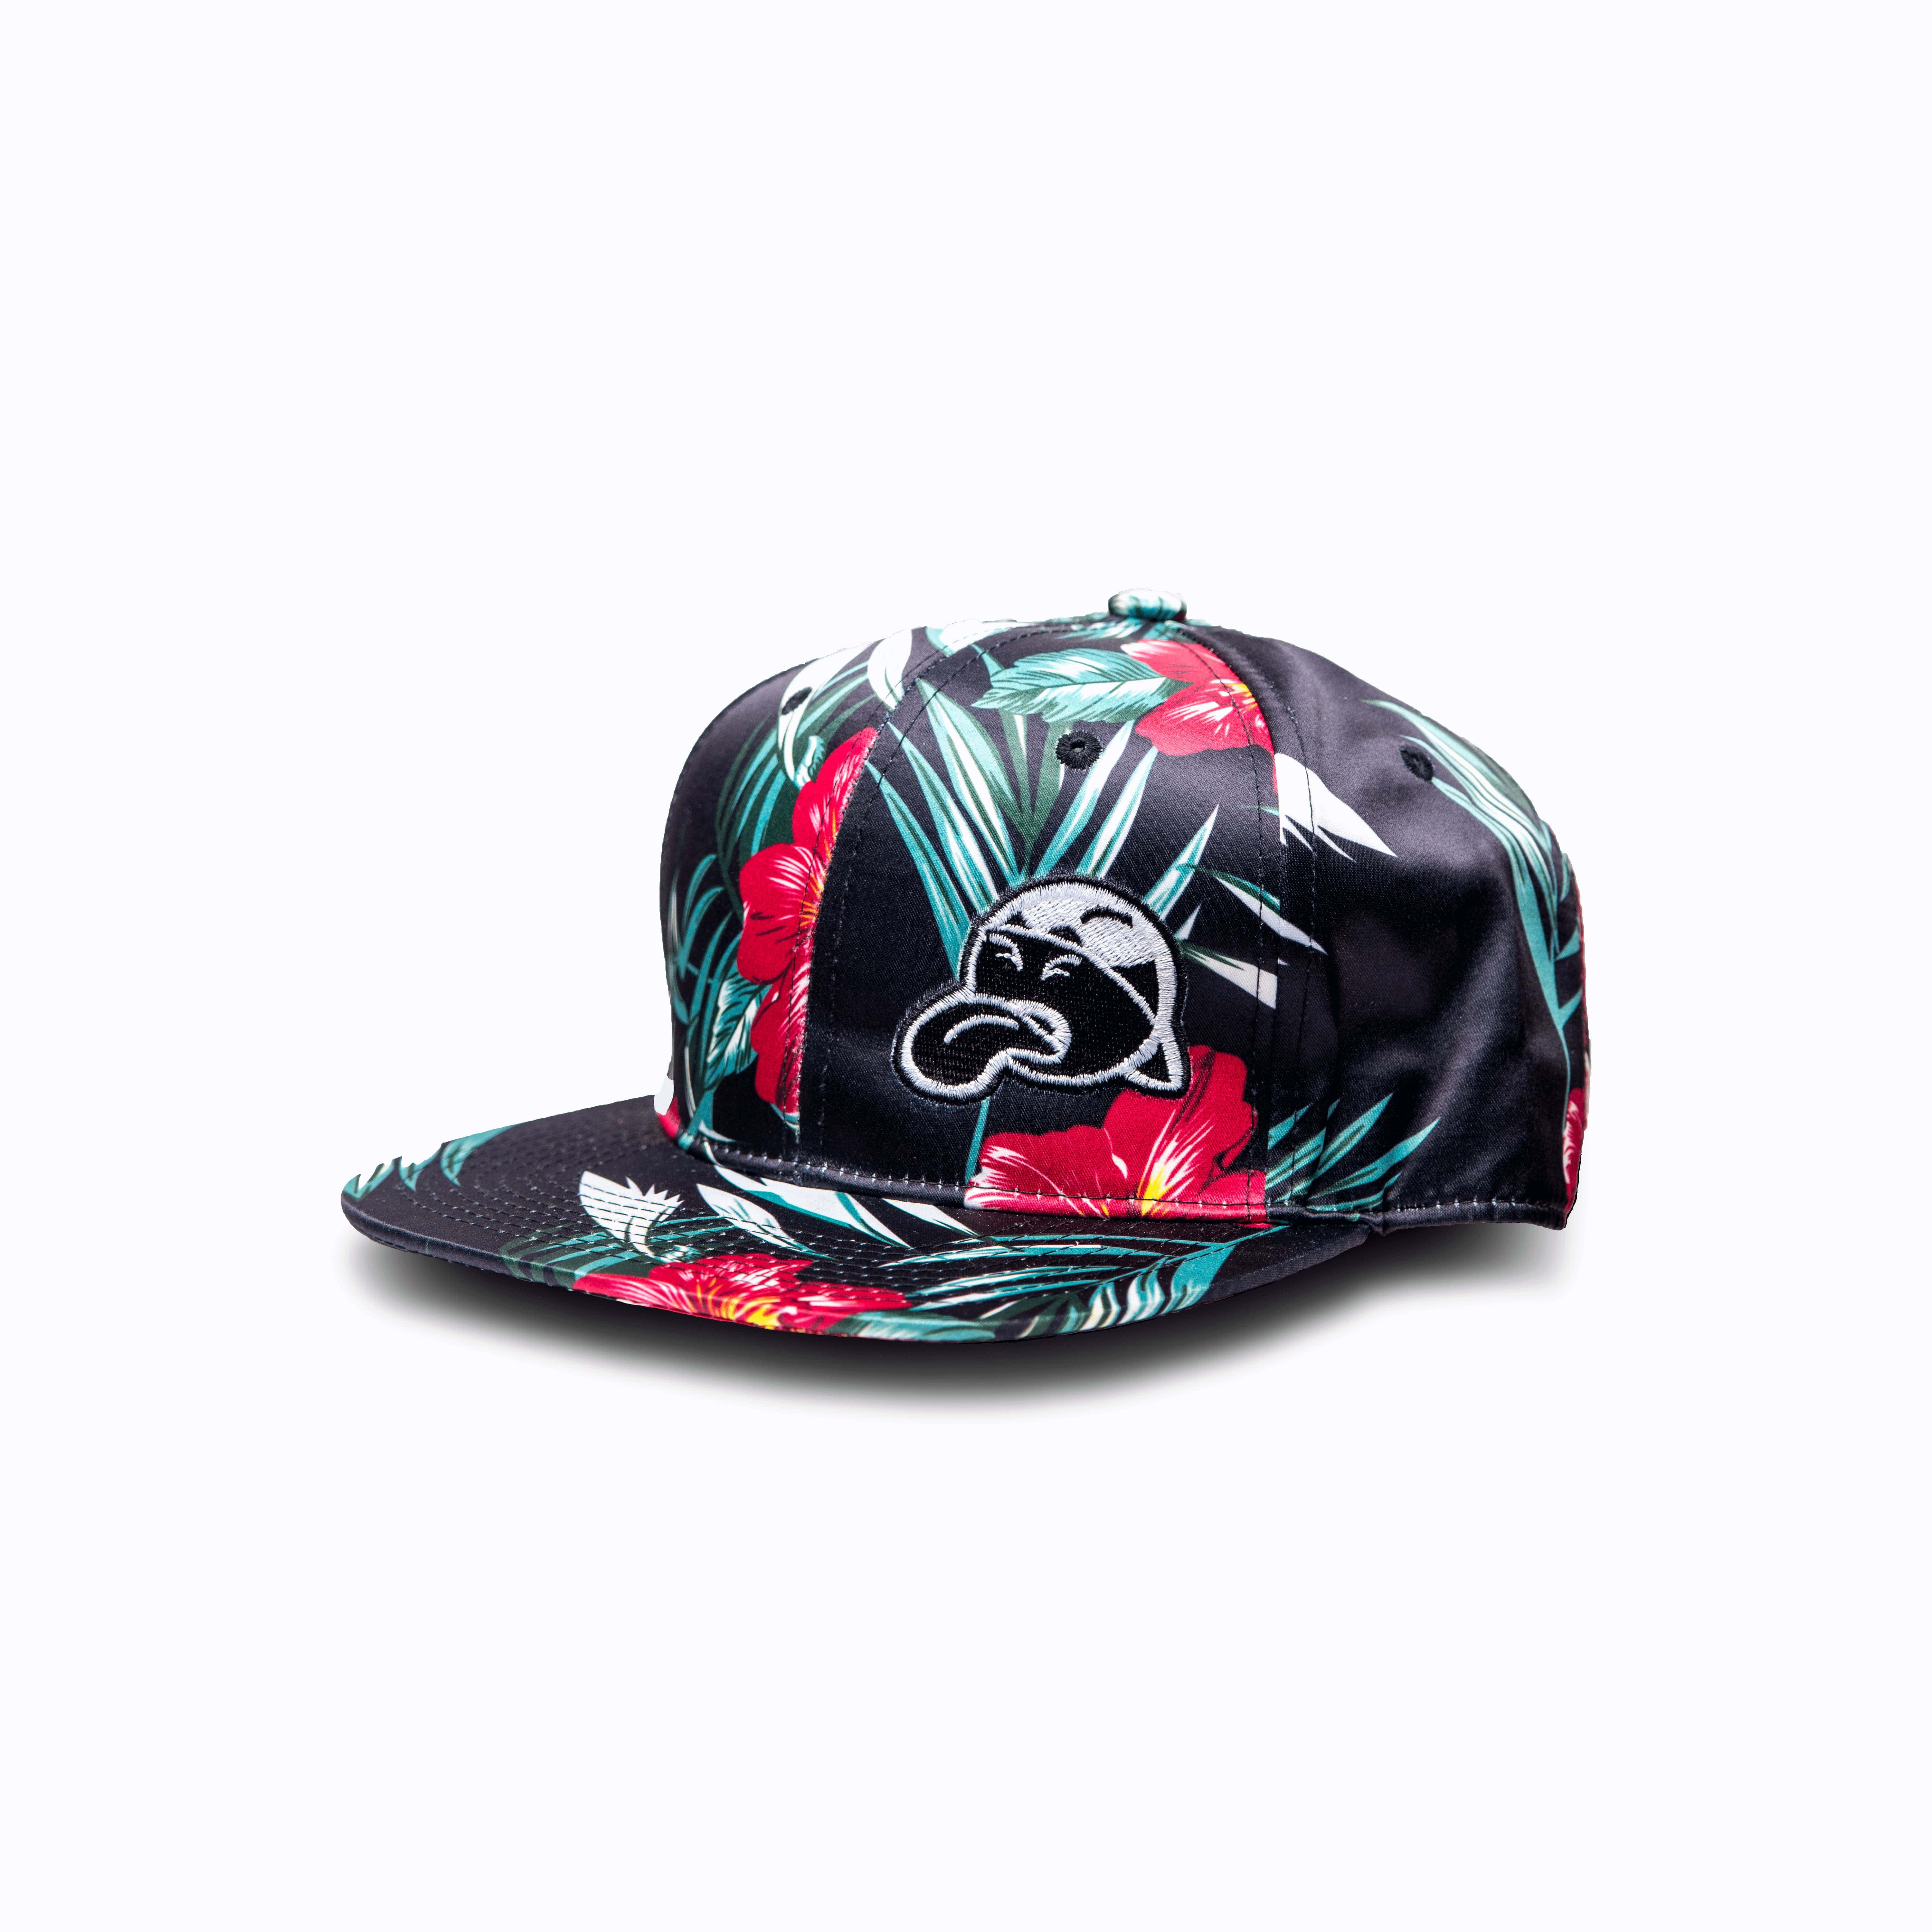 Floral Signature Unisex Hat w Snapback Closure – DRMHDFLY f41b4a48242